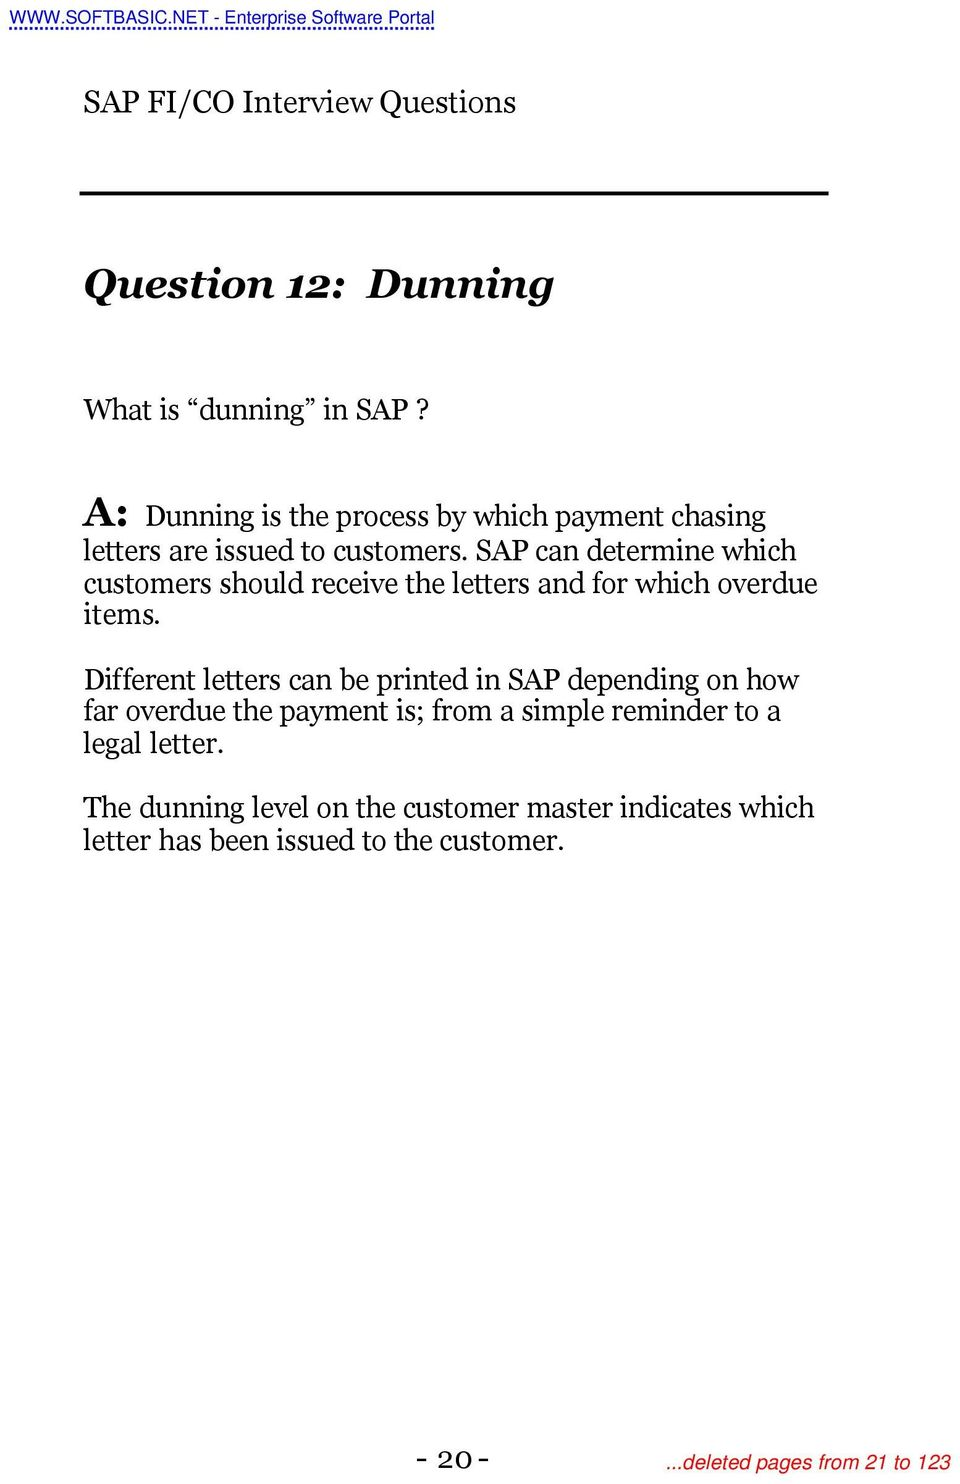 SAP can determine which customers should receive the letters and for which overdue items.